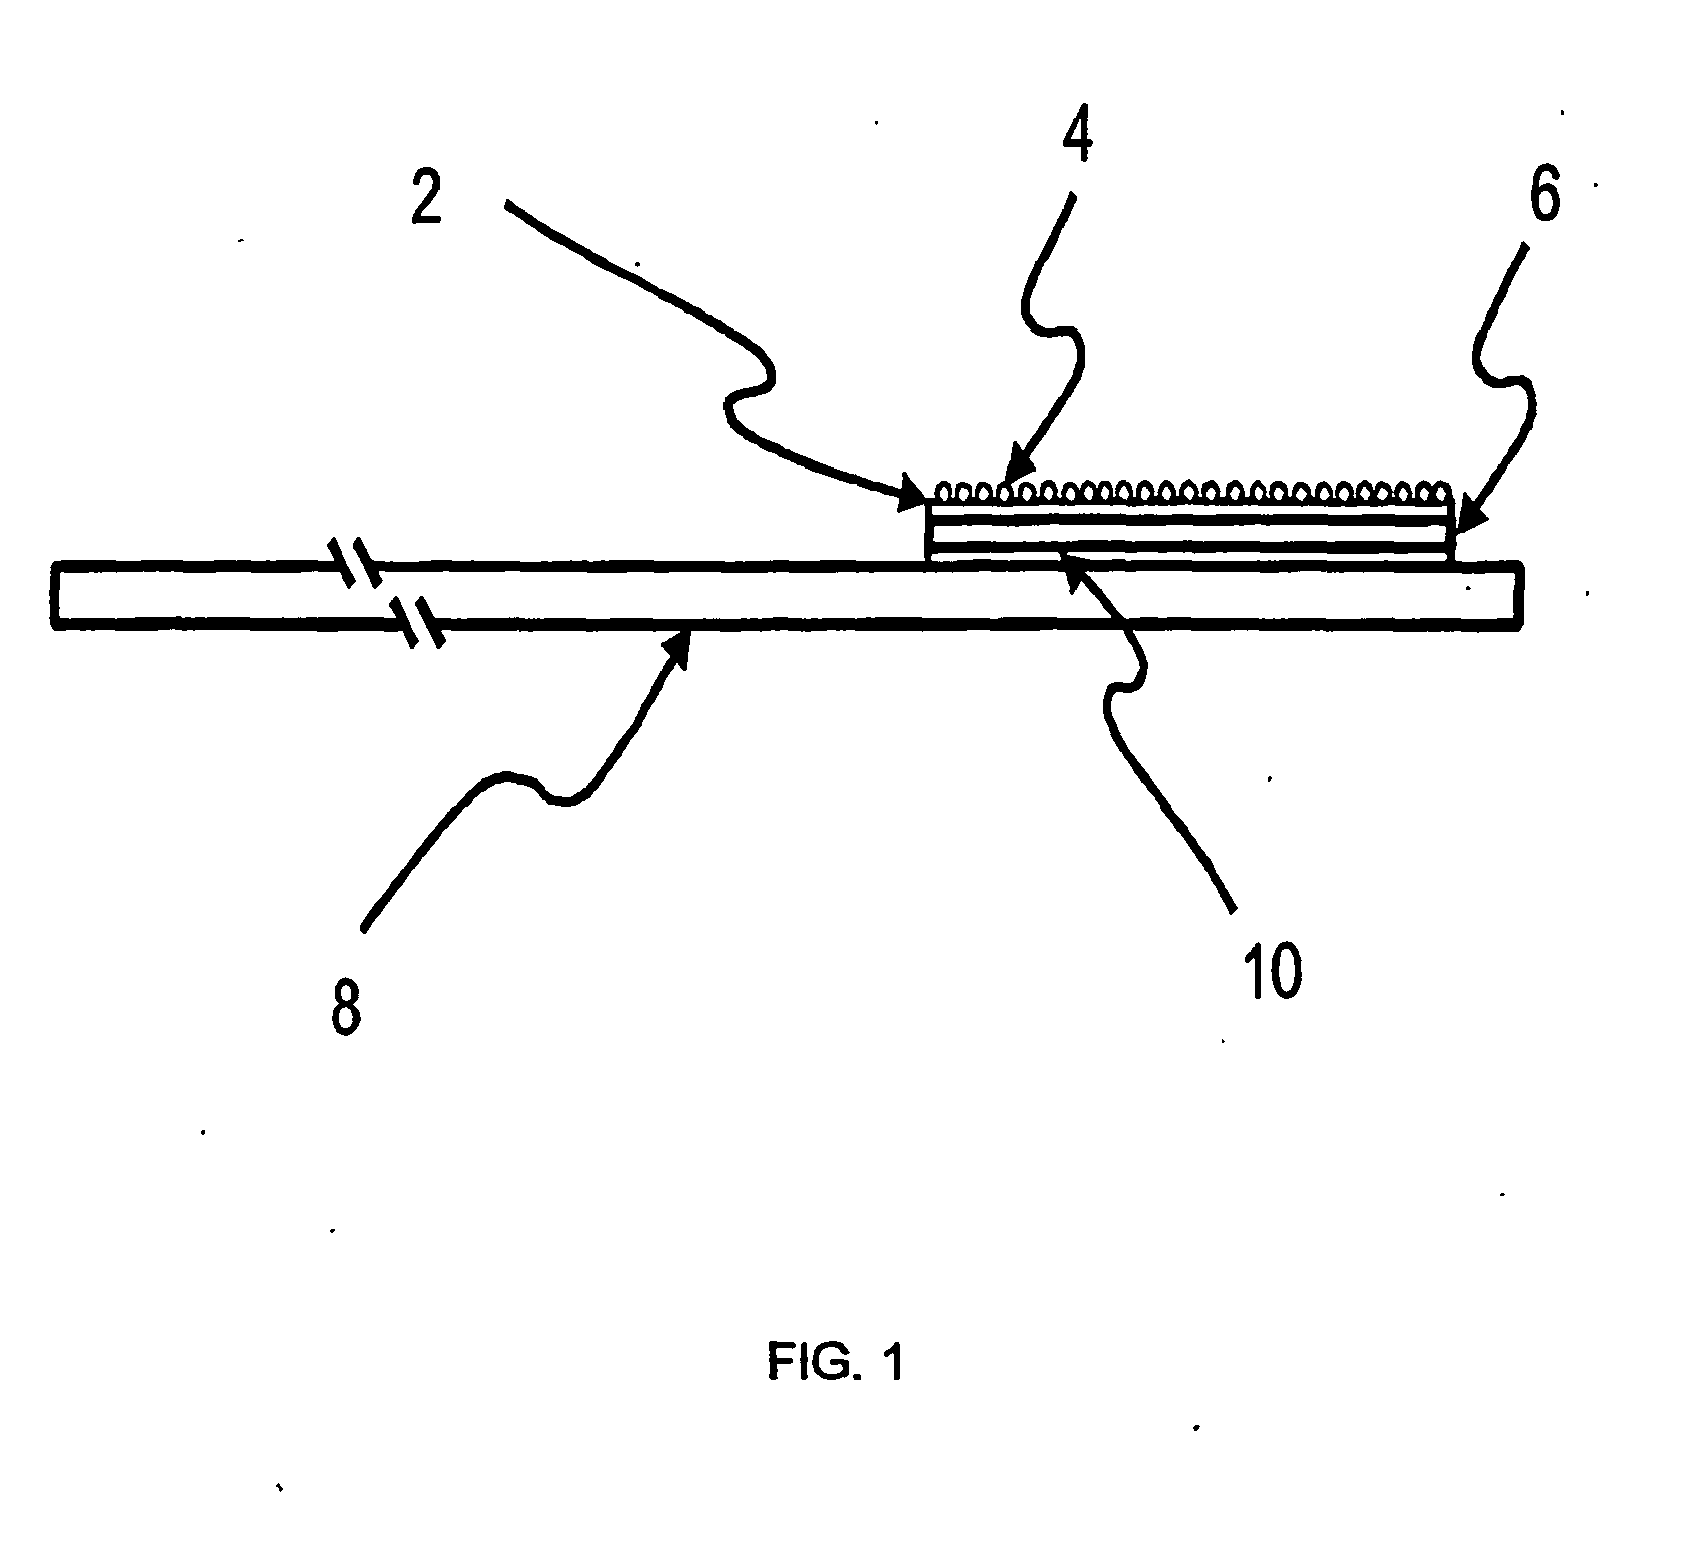 METHOD AND APPARATUS FOR TESTING ALDEHYDE IN A POLYESTER